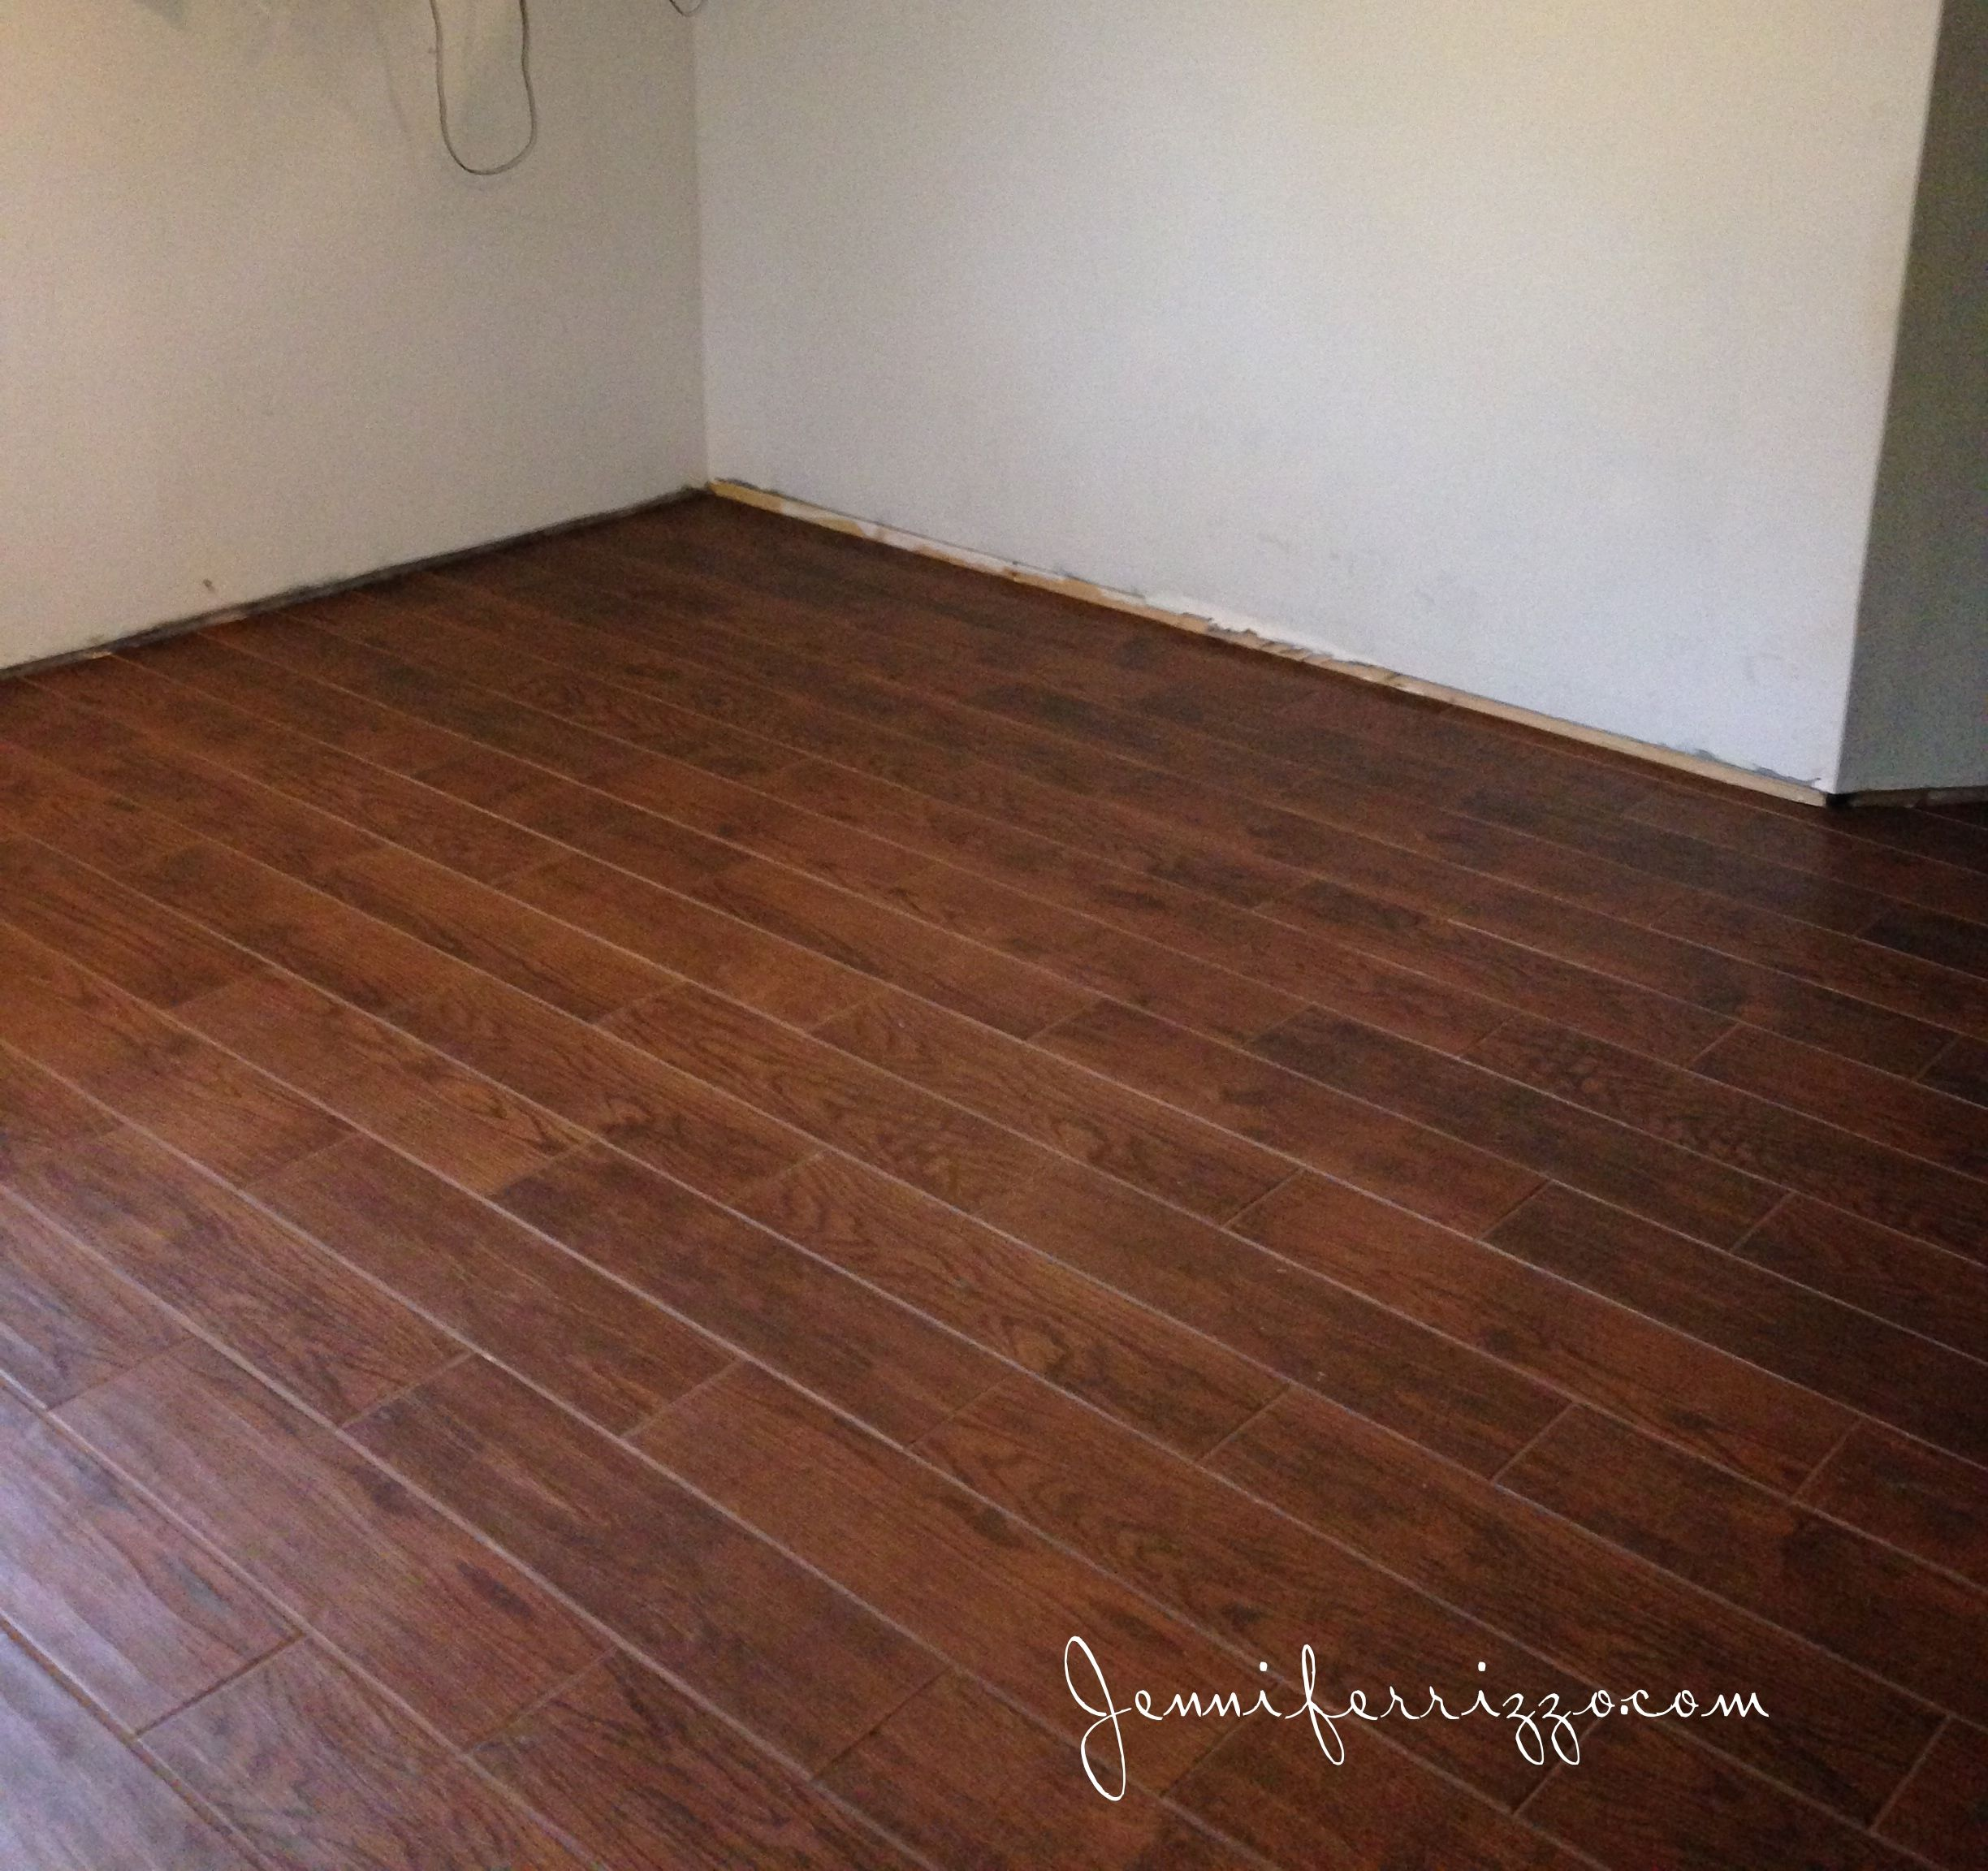 Our Wood Look Ceramic Tile Is Finally Installed Diy Pinterest